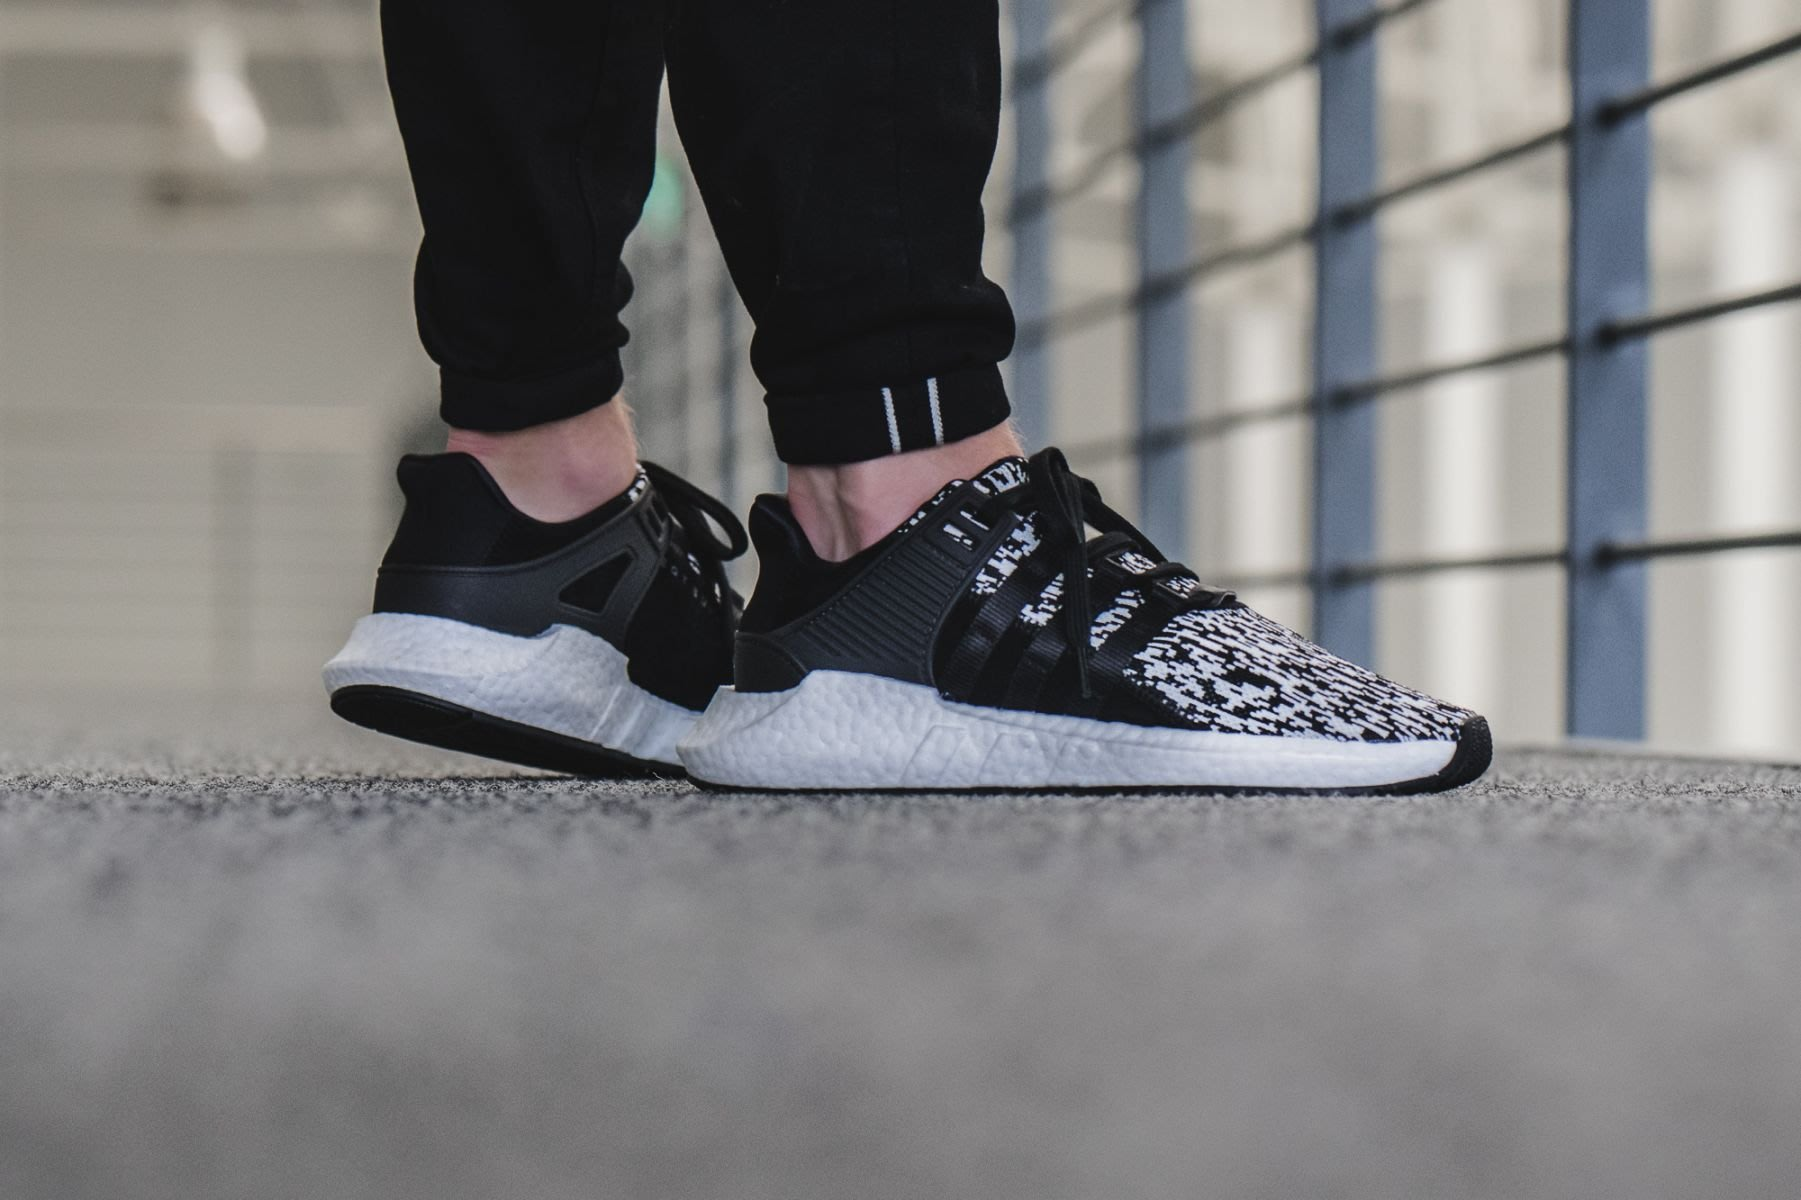 BOUTIQUE adidas EQT Support 93 17 Boost 黑白雪花編織BZ0584  f8390d8aeb